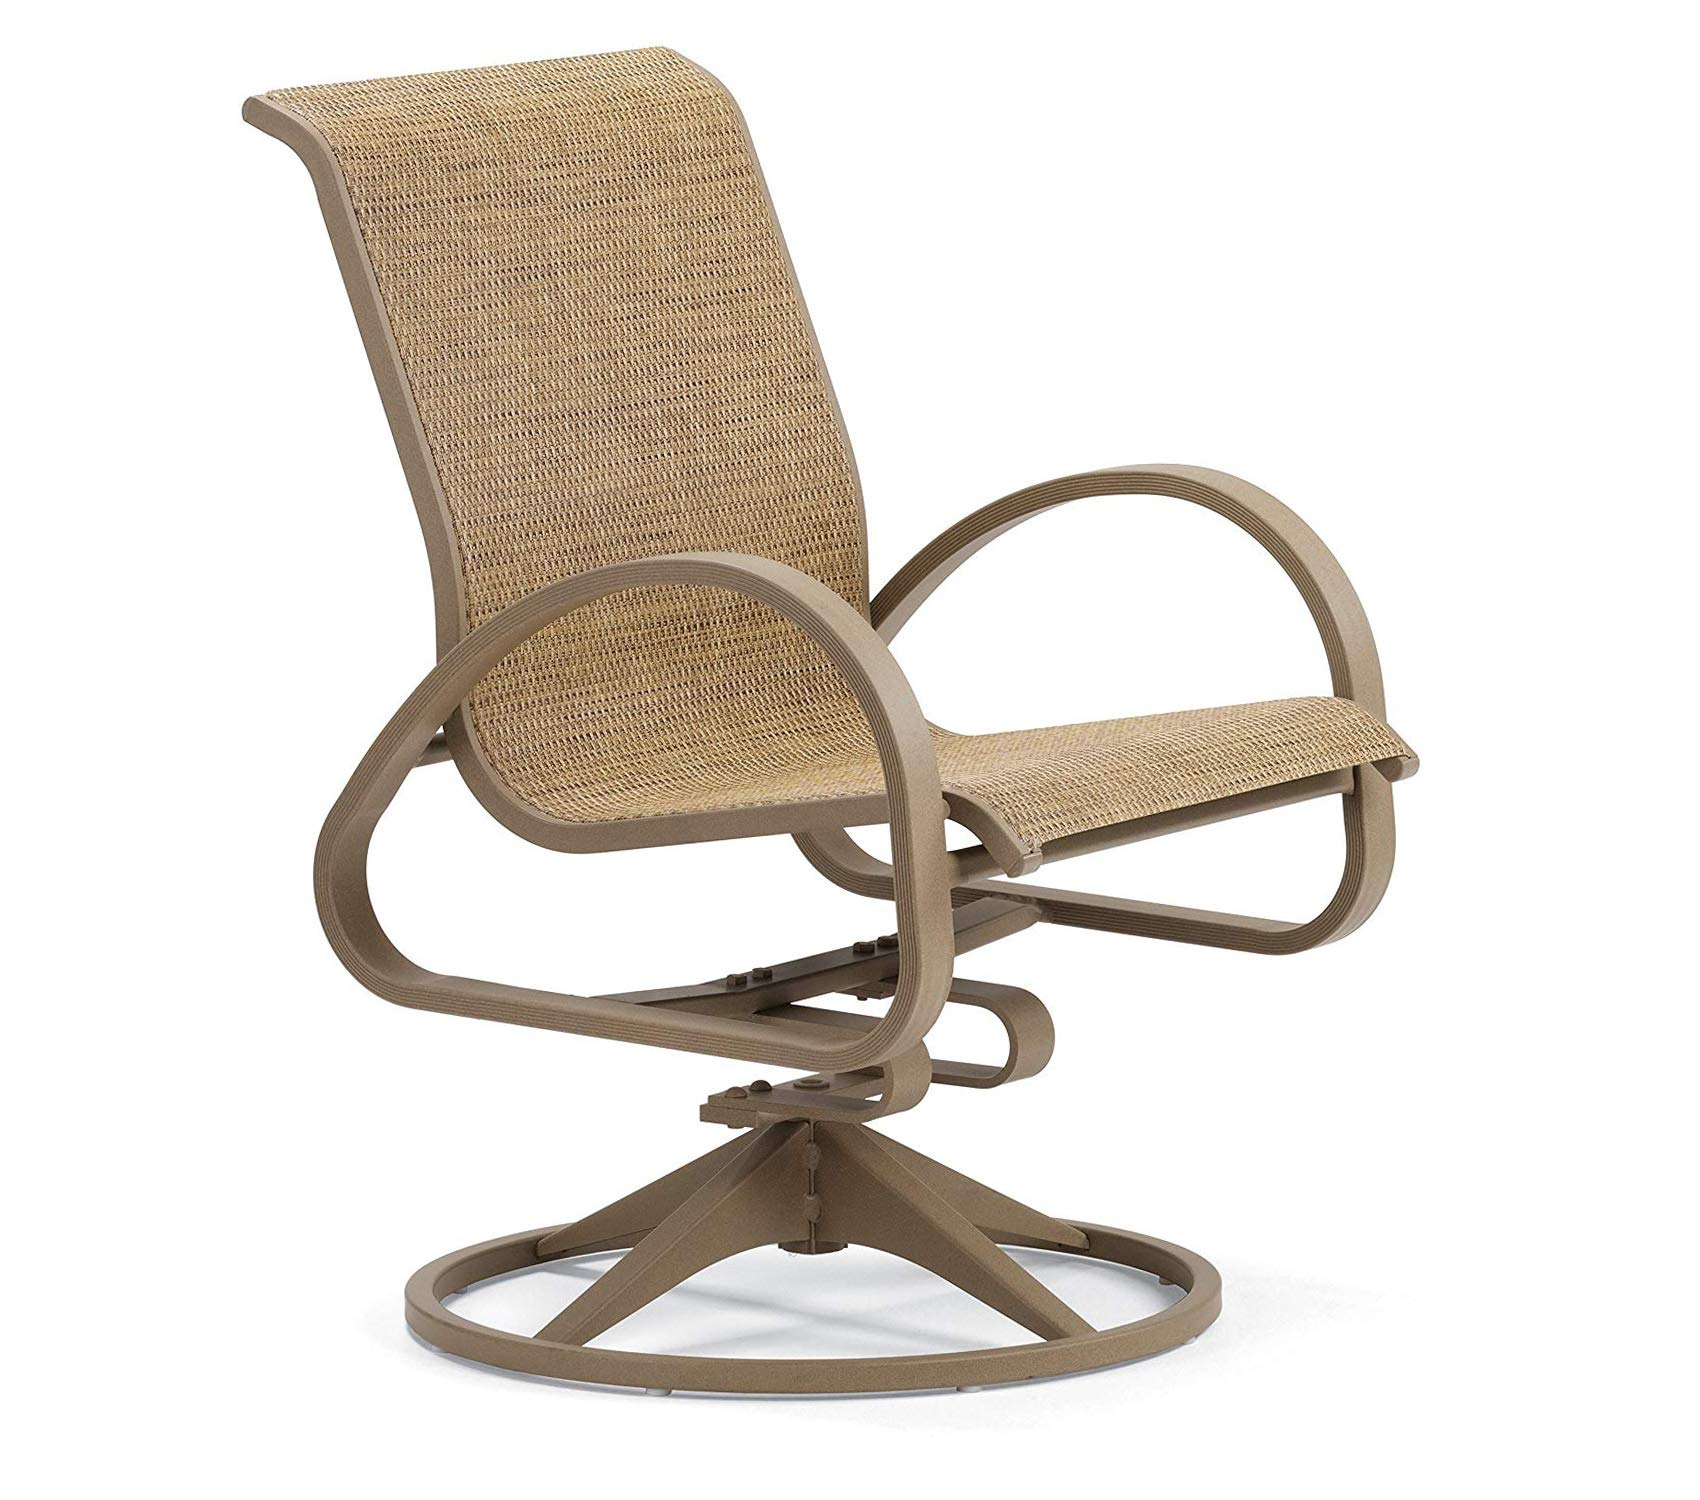 Wood & Style Patio Outdoor Garden Premium Sling Collection Aluminum Swivel Rocker, Bark, Textured Graphite Finish